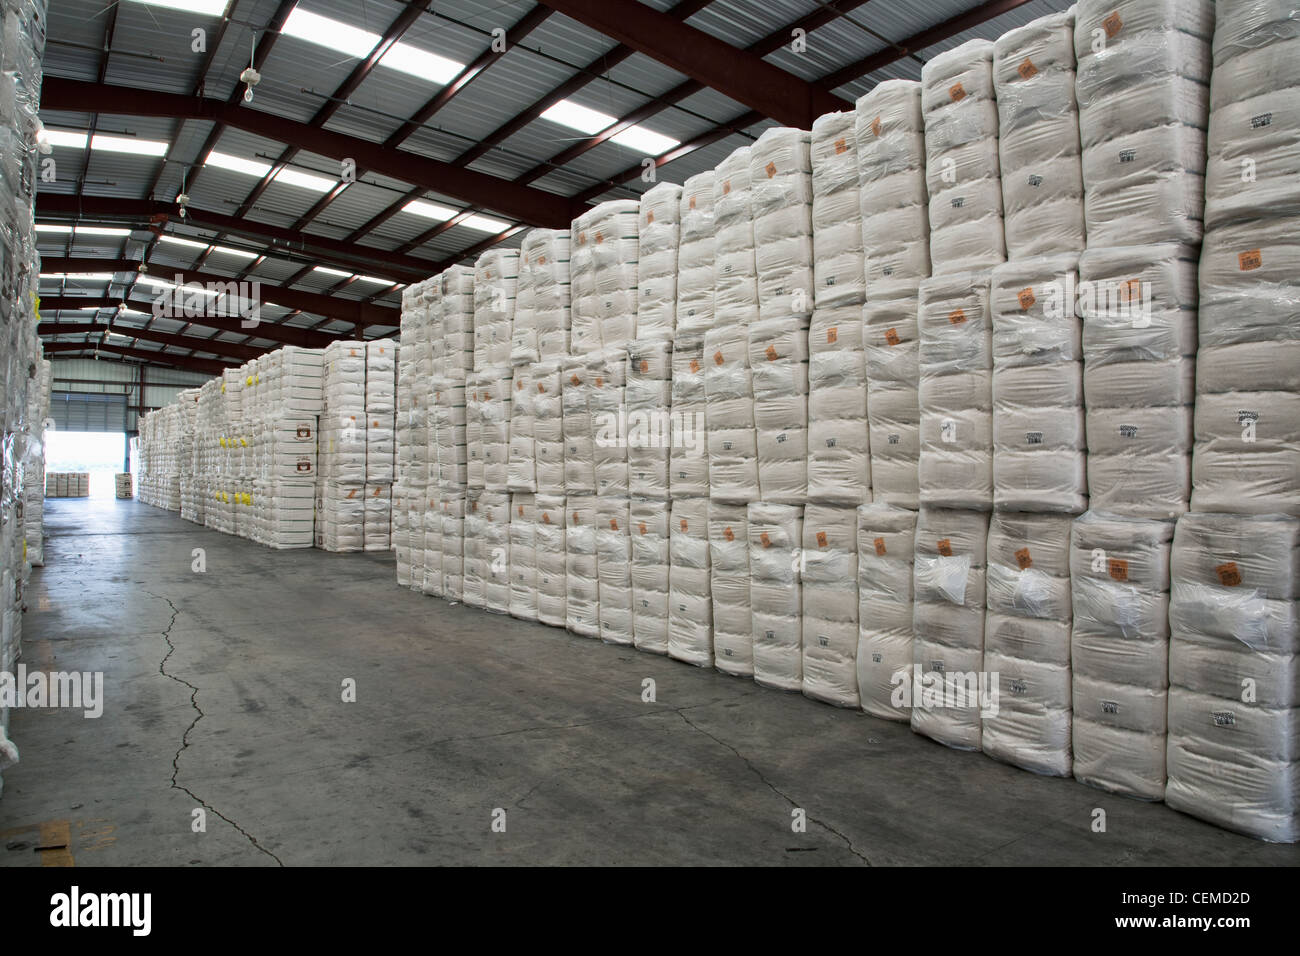 Agriculture - Cotton bales stacked and stored in a warehouse / Eastern Arkansas, USA. - Stock Image